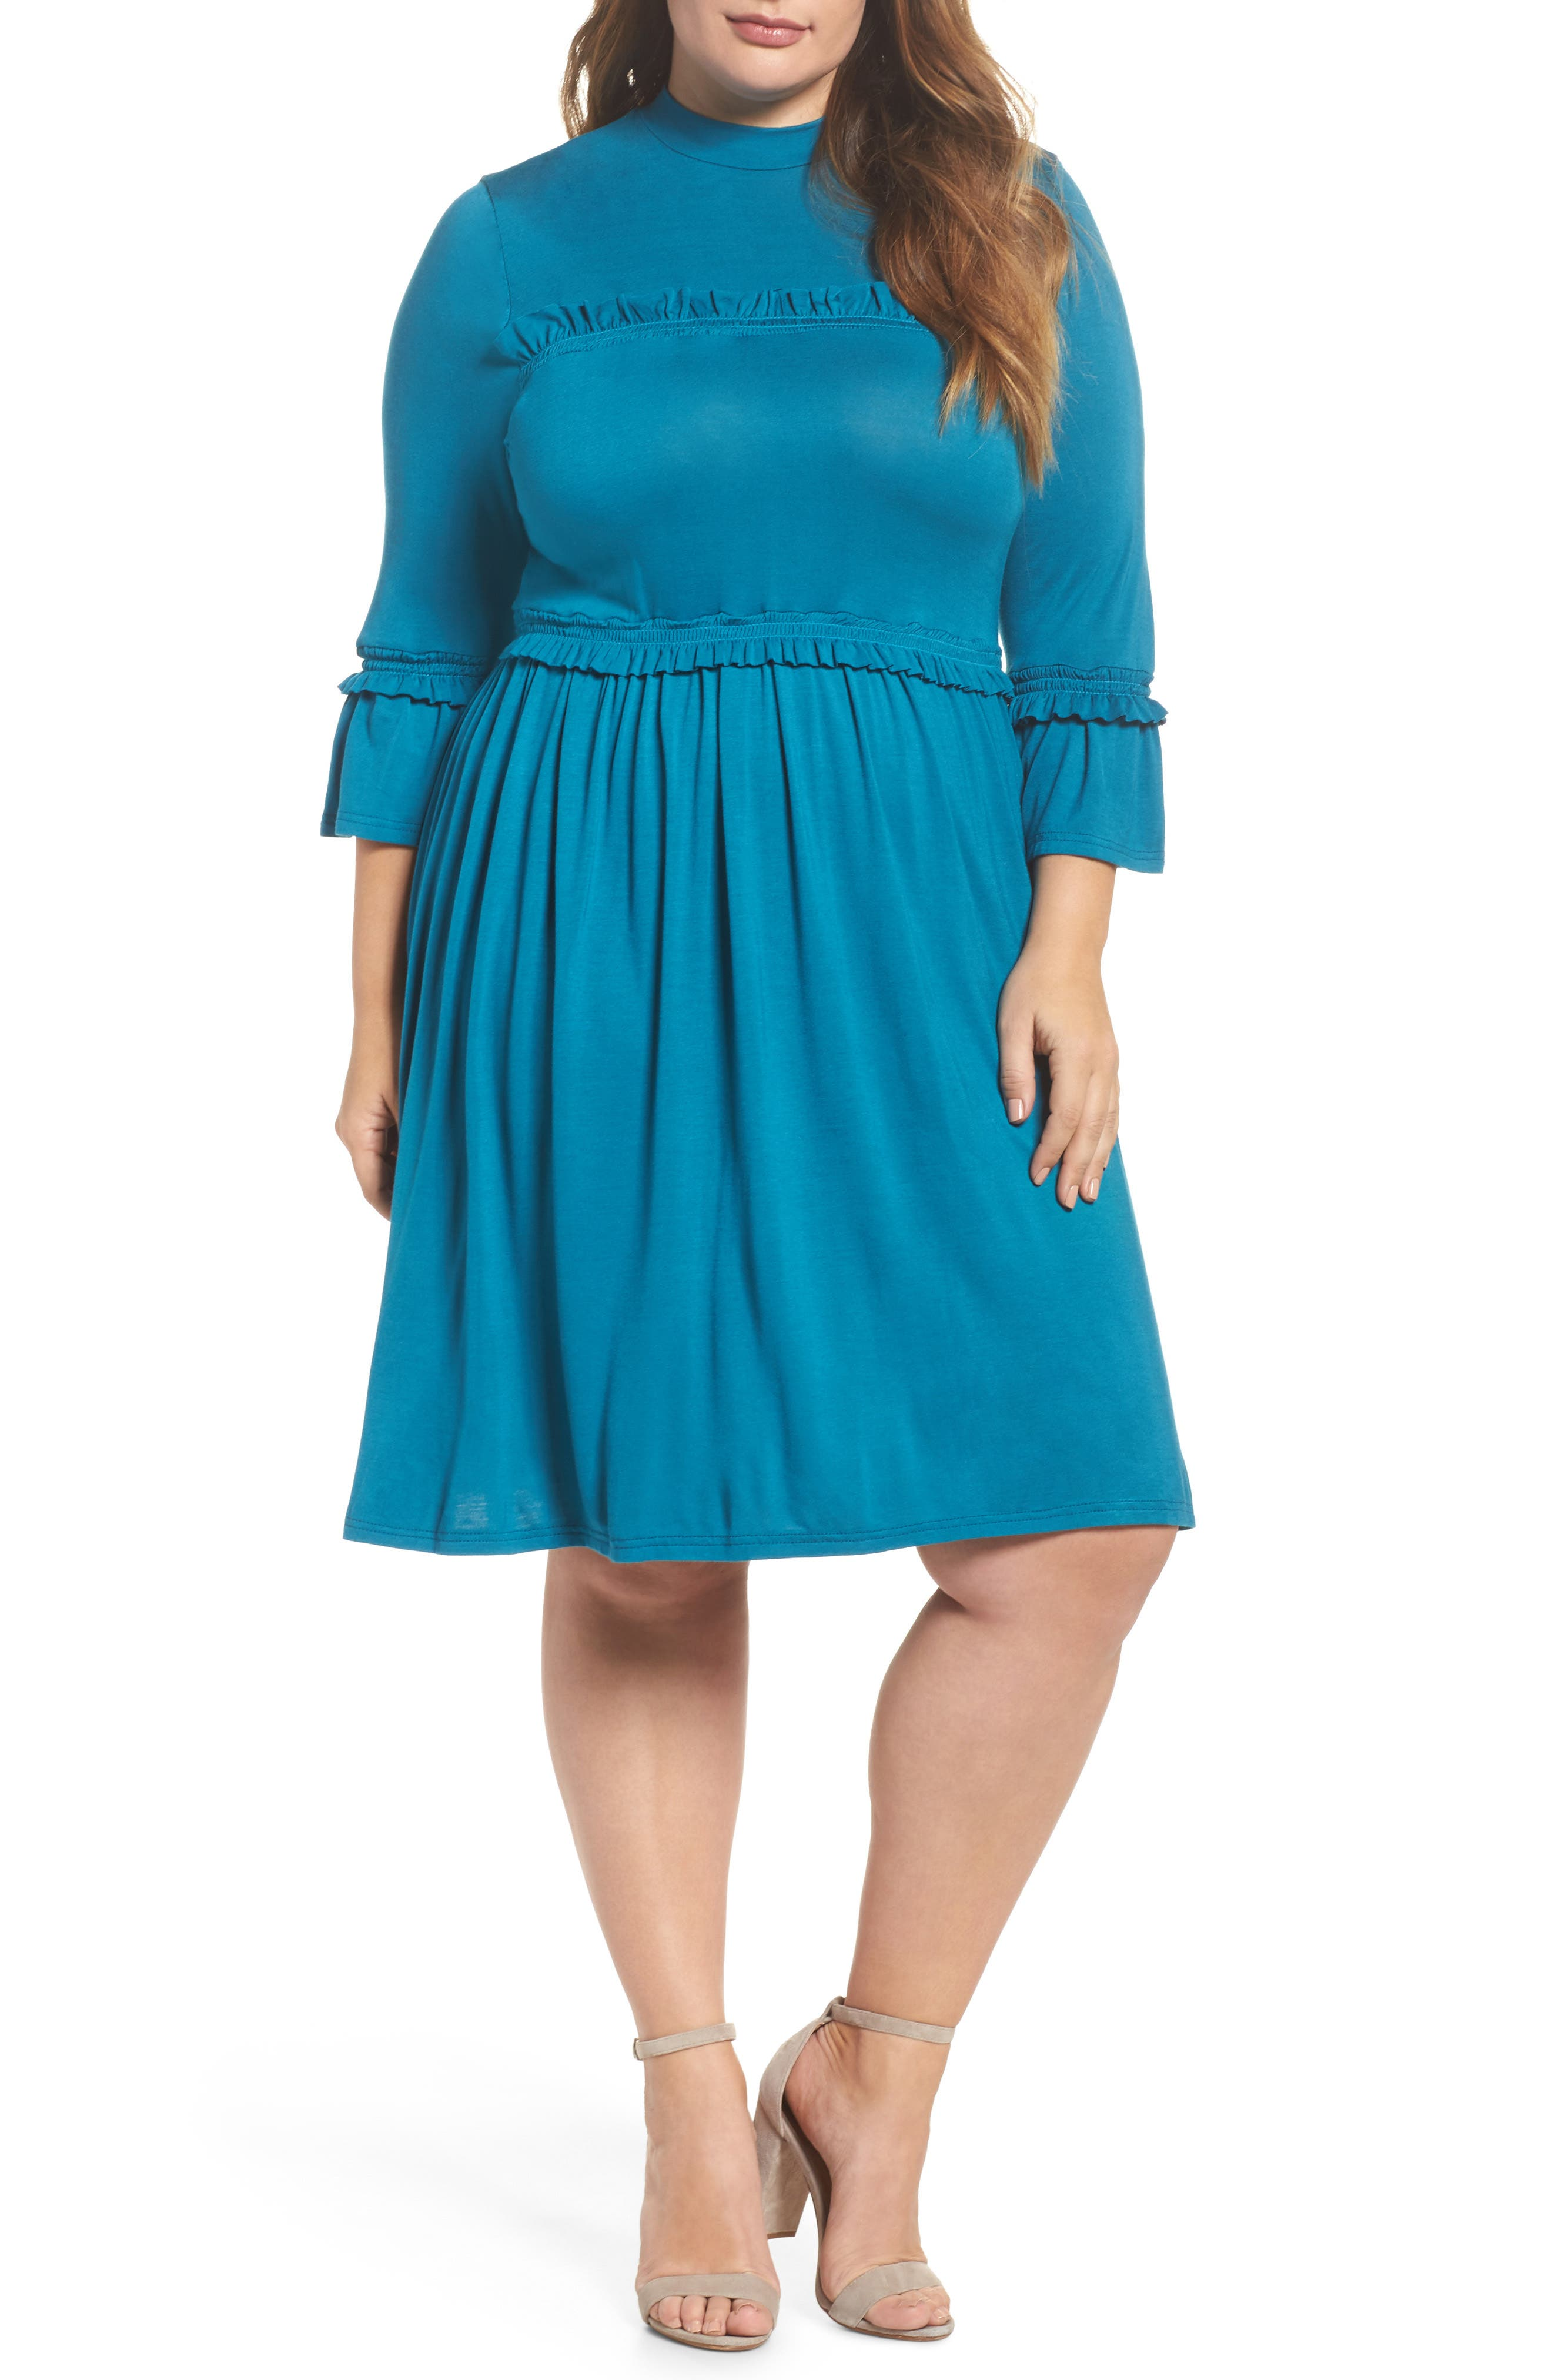 Main Image - LOST INK Double Frill Skater Dress (Plus Size)